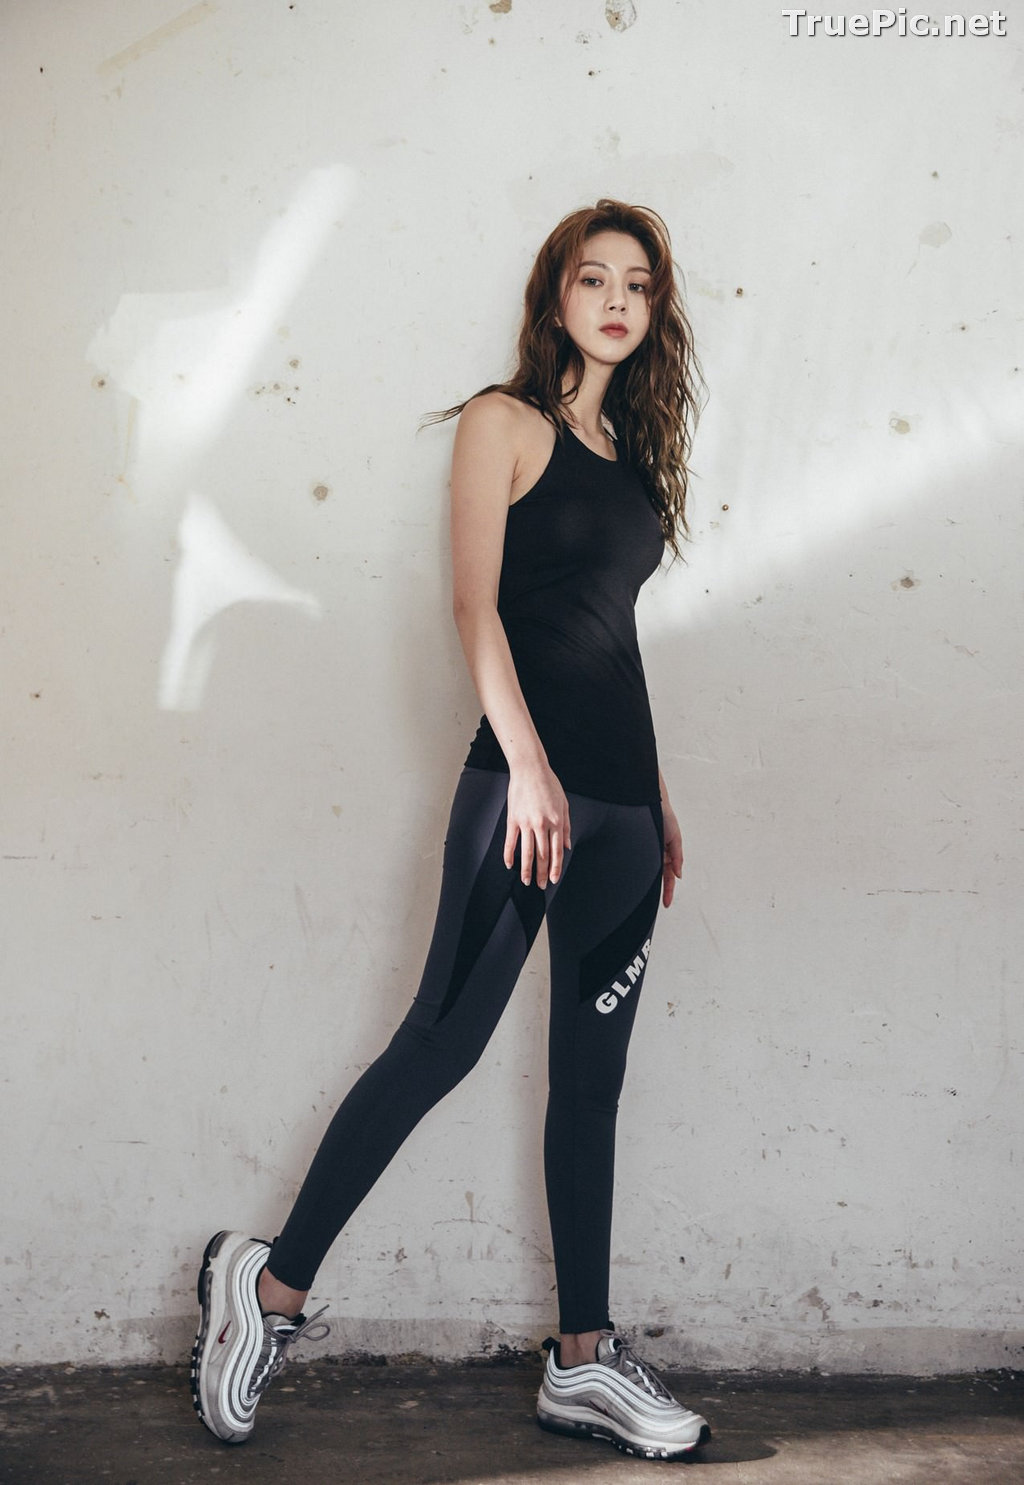 Image Korean Fashion Model - Lee Chae Eun - Fitness Set Collection #1 - TruePic.net - Picture-8